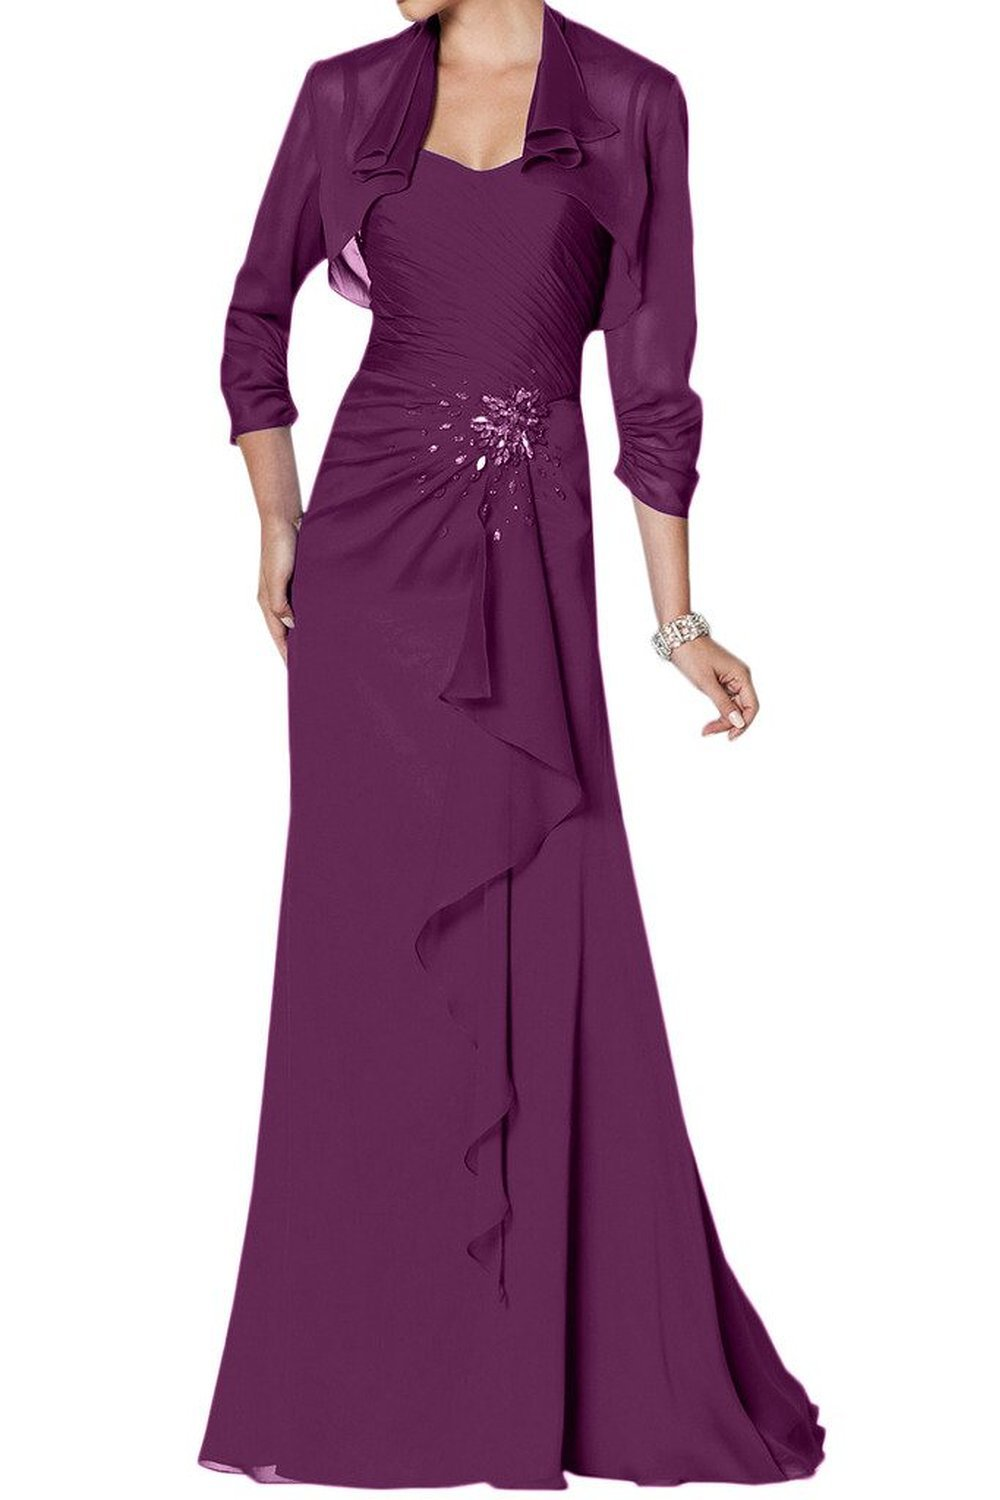 Purple Strapless Chiffon Sheath Beaded Floor Length Mother Of The Bride Dress With Jacket